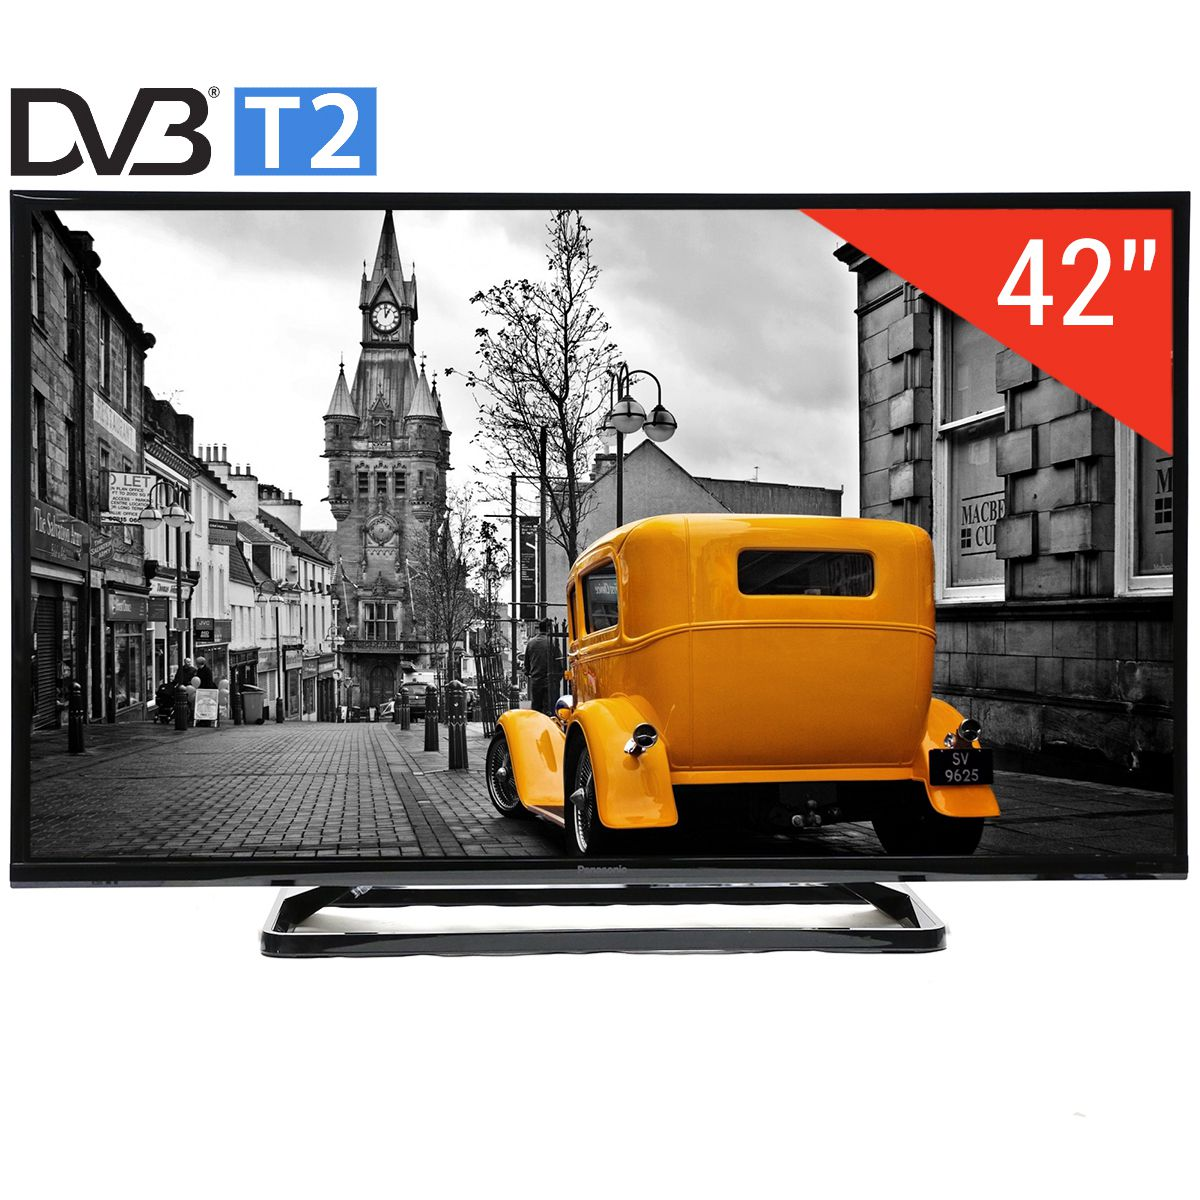 Tivi led panasonic TH-42A400V 42 inch